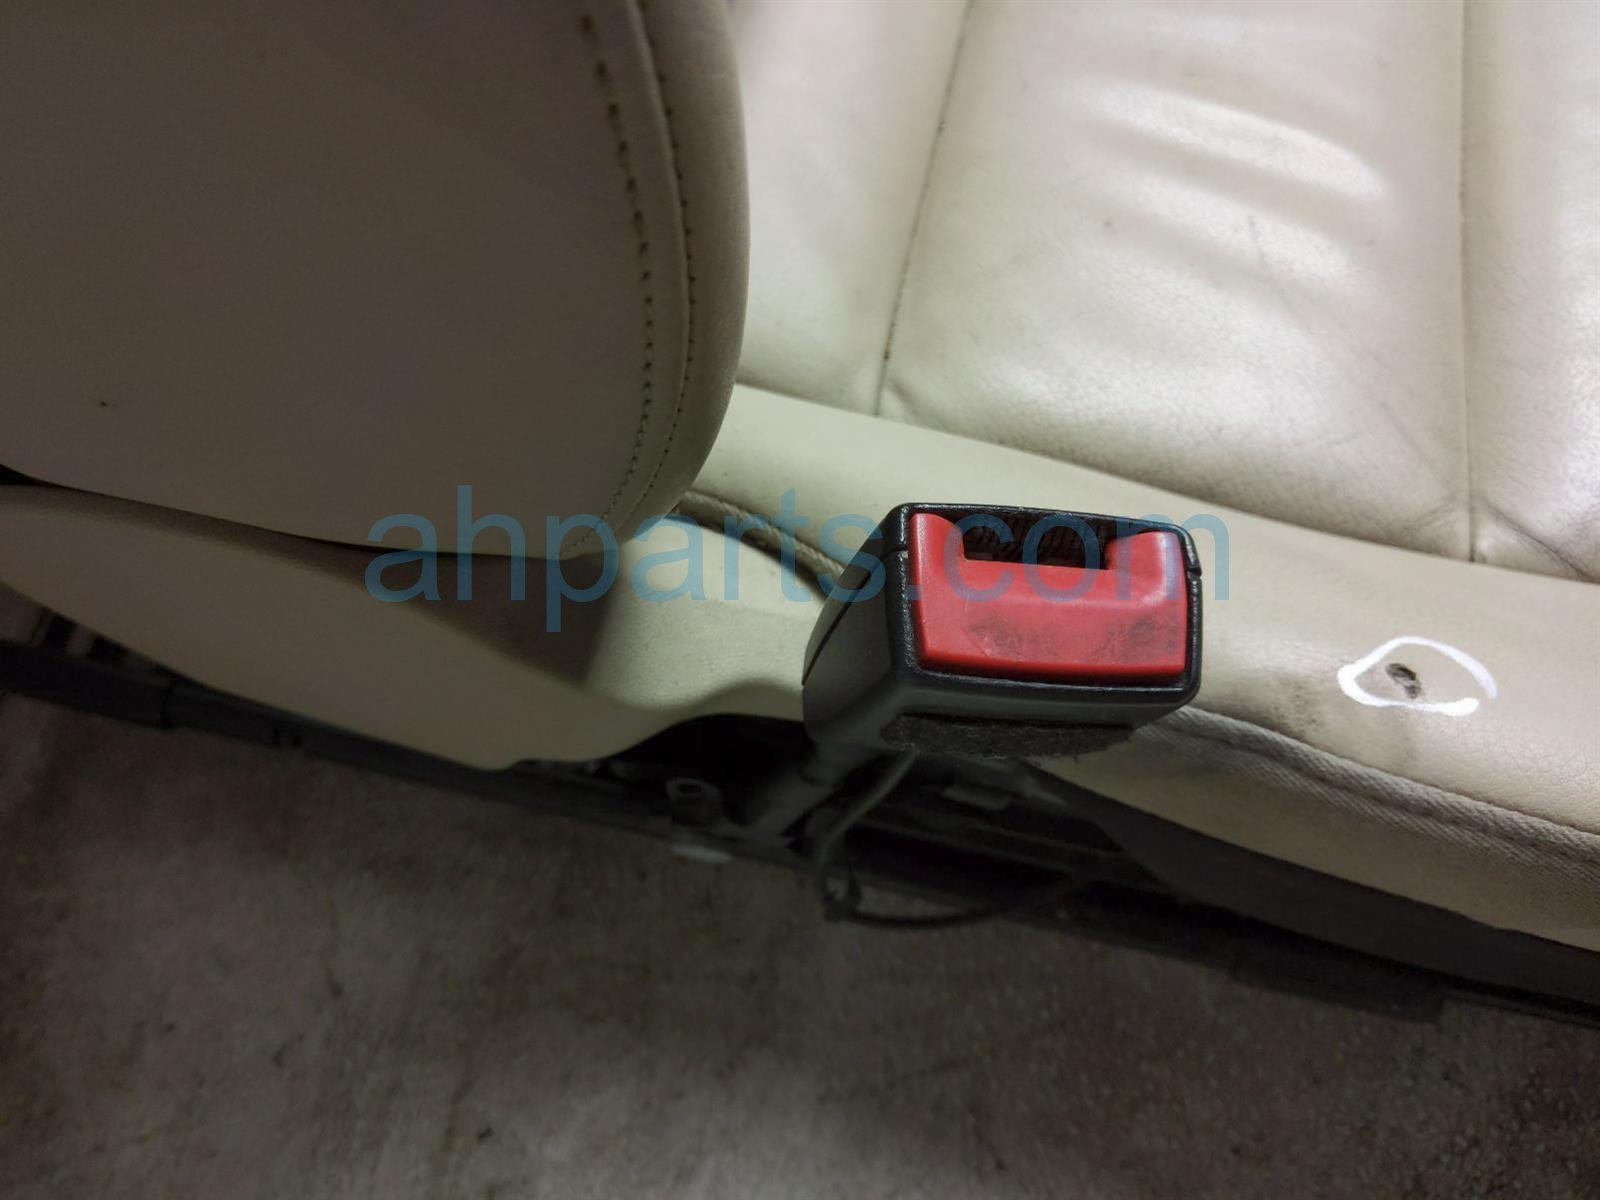 2011 Audi A6 Audi Front Driver Seat   Tan   W/ Airbag 8E0881157K Replacement